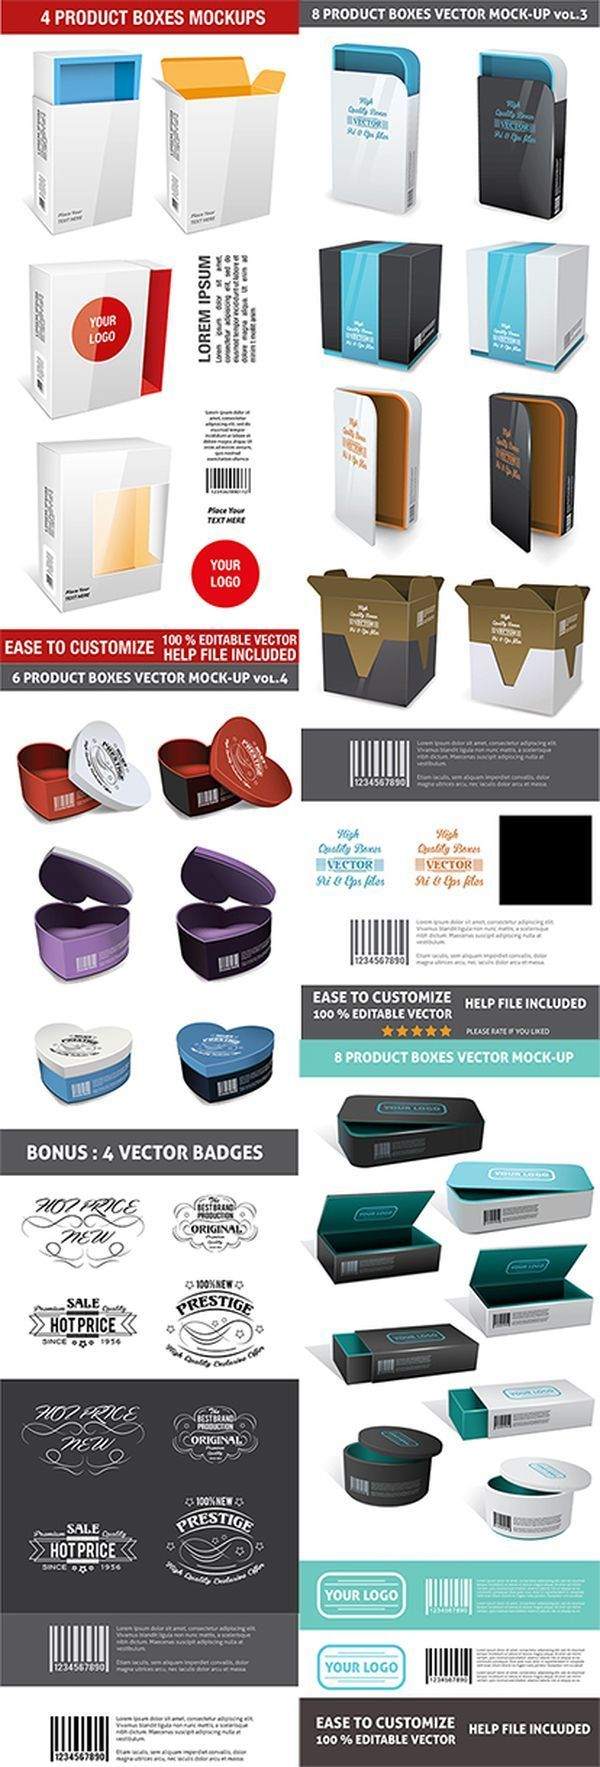 Download 20 Realistic Product Packaging Mockup Template Psd Free Packaging Mockup Mockup Psd Design Freebie